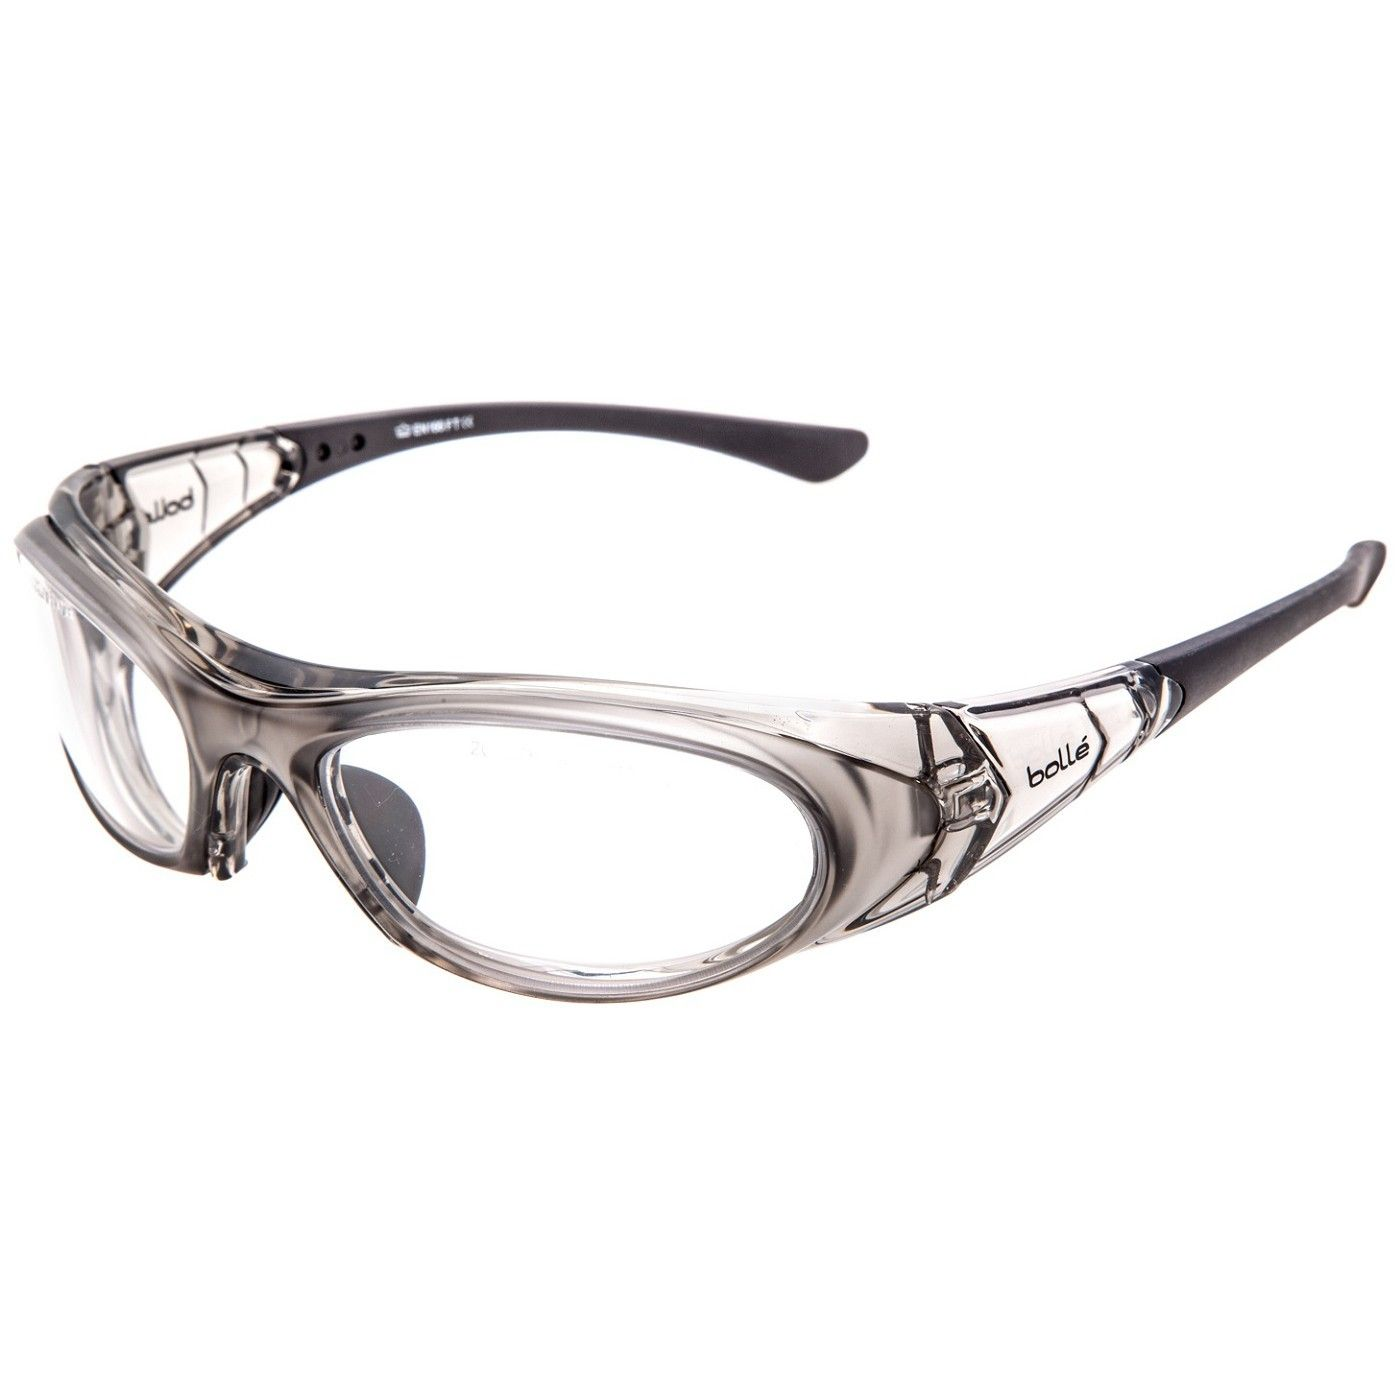 Bolle 40035 boss safety glasses clear frame clear anti